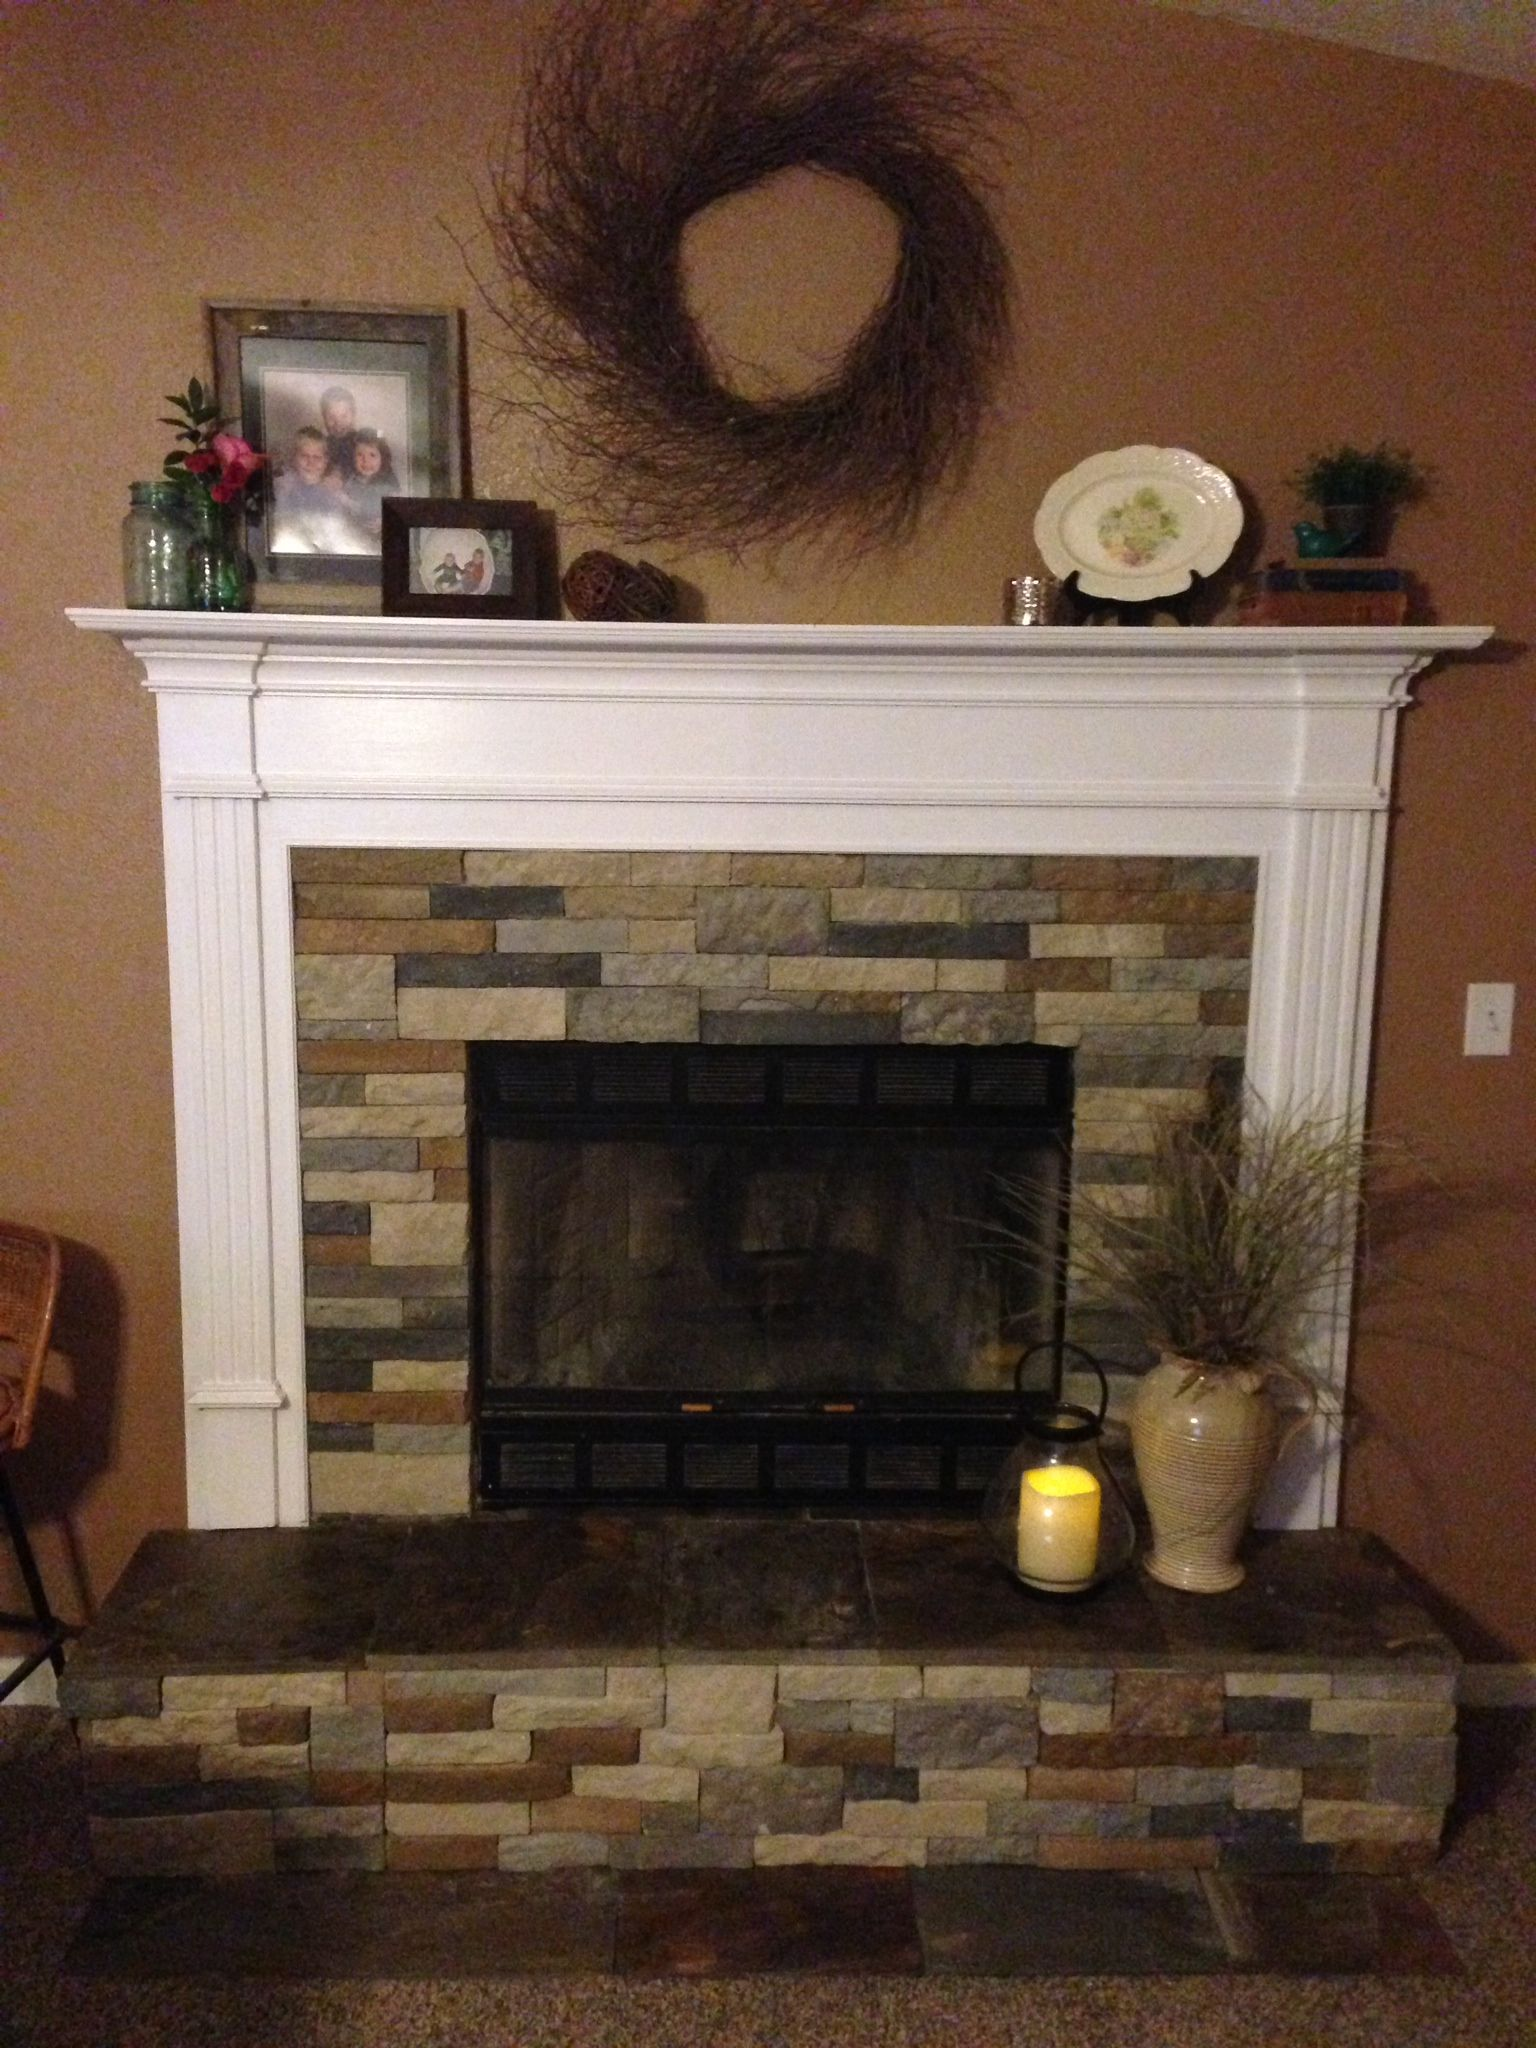 fire lowes sears lo tv heaters home fireplaces natural tips big stands a grates fireplace with screen walmart electric warmth pits provides more stand flat